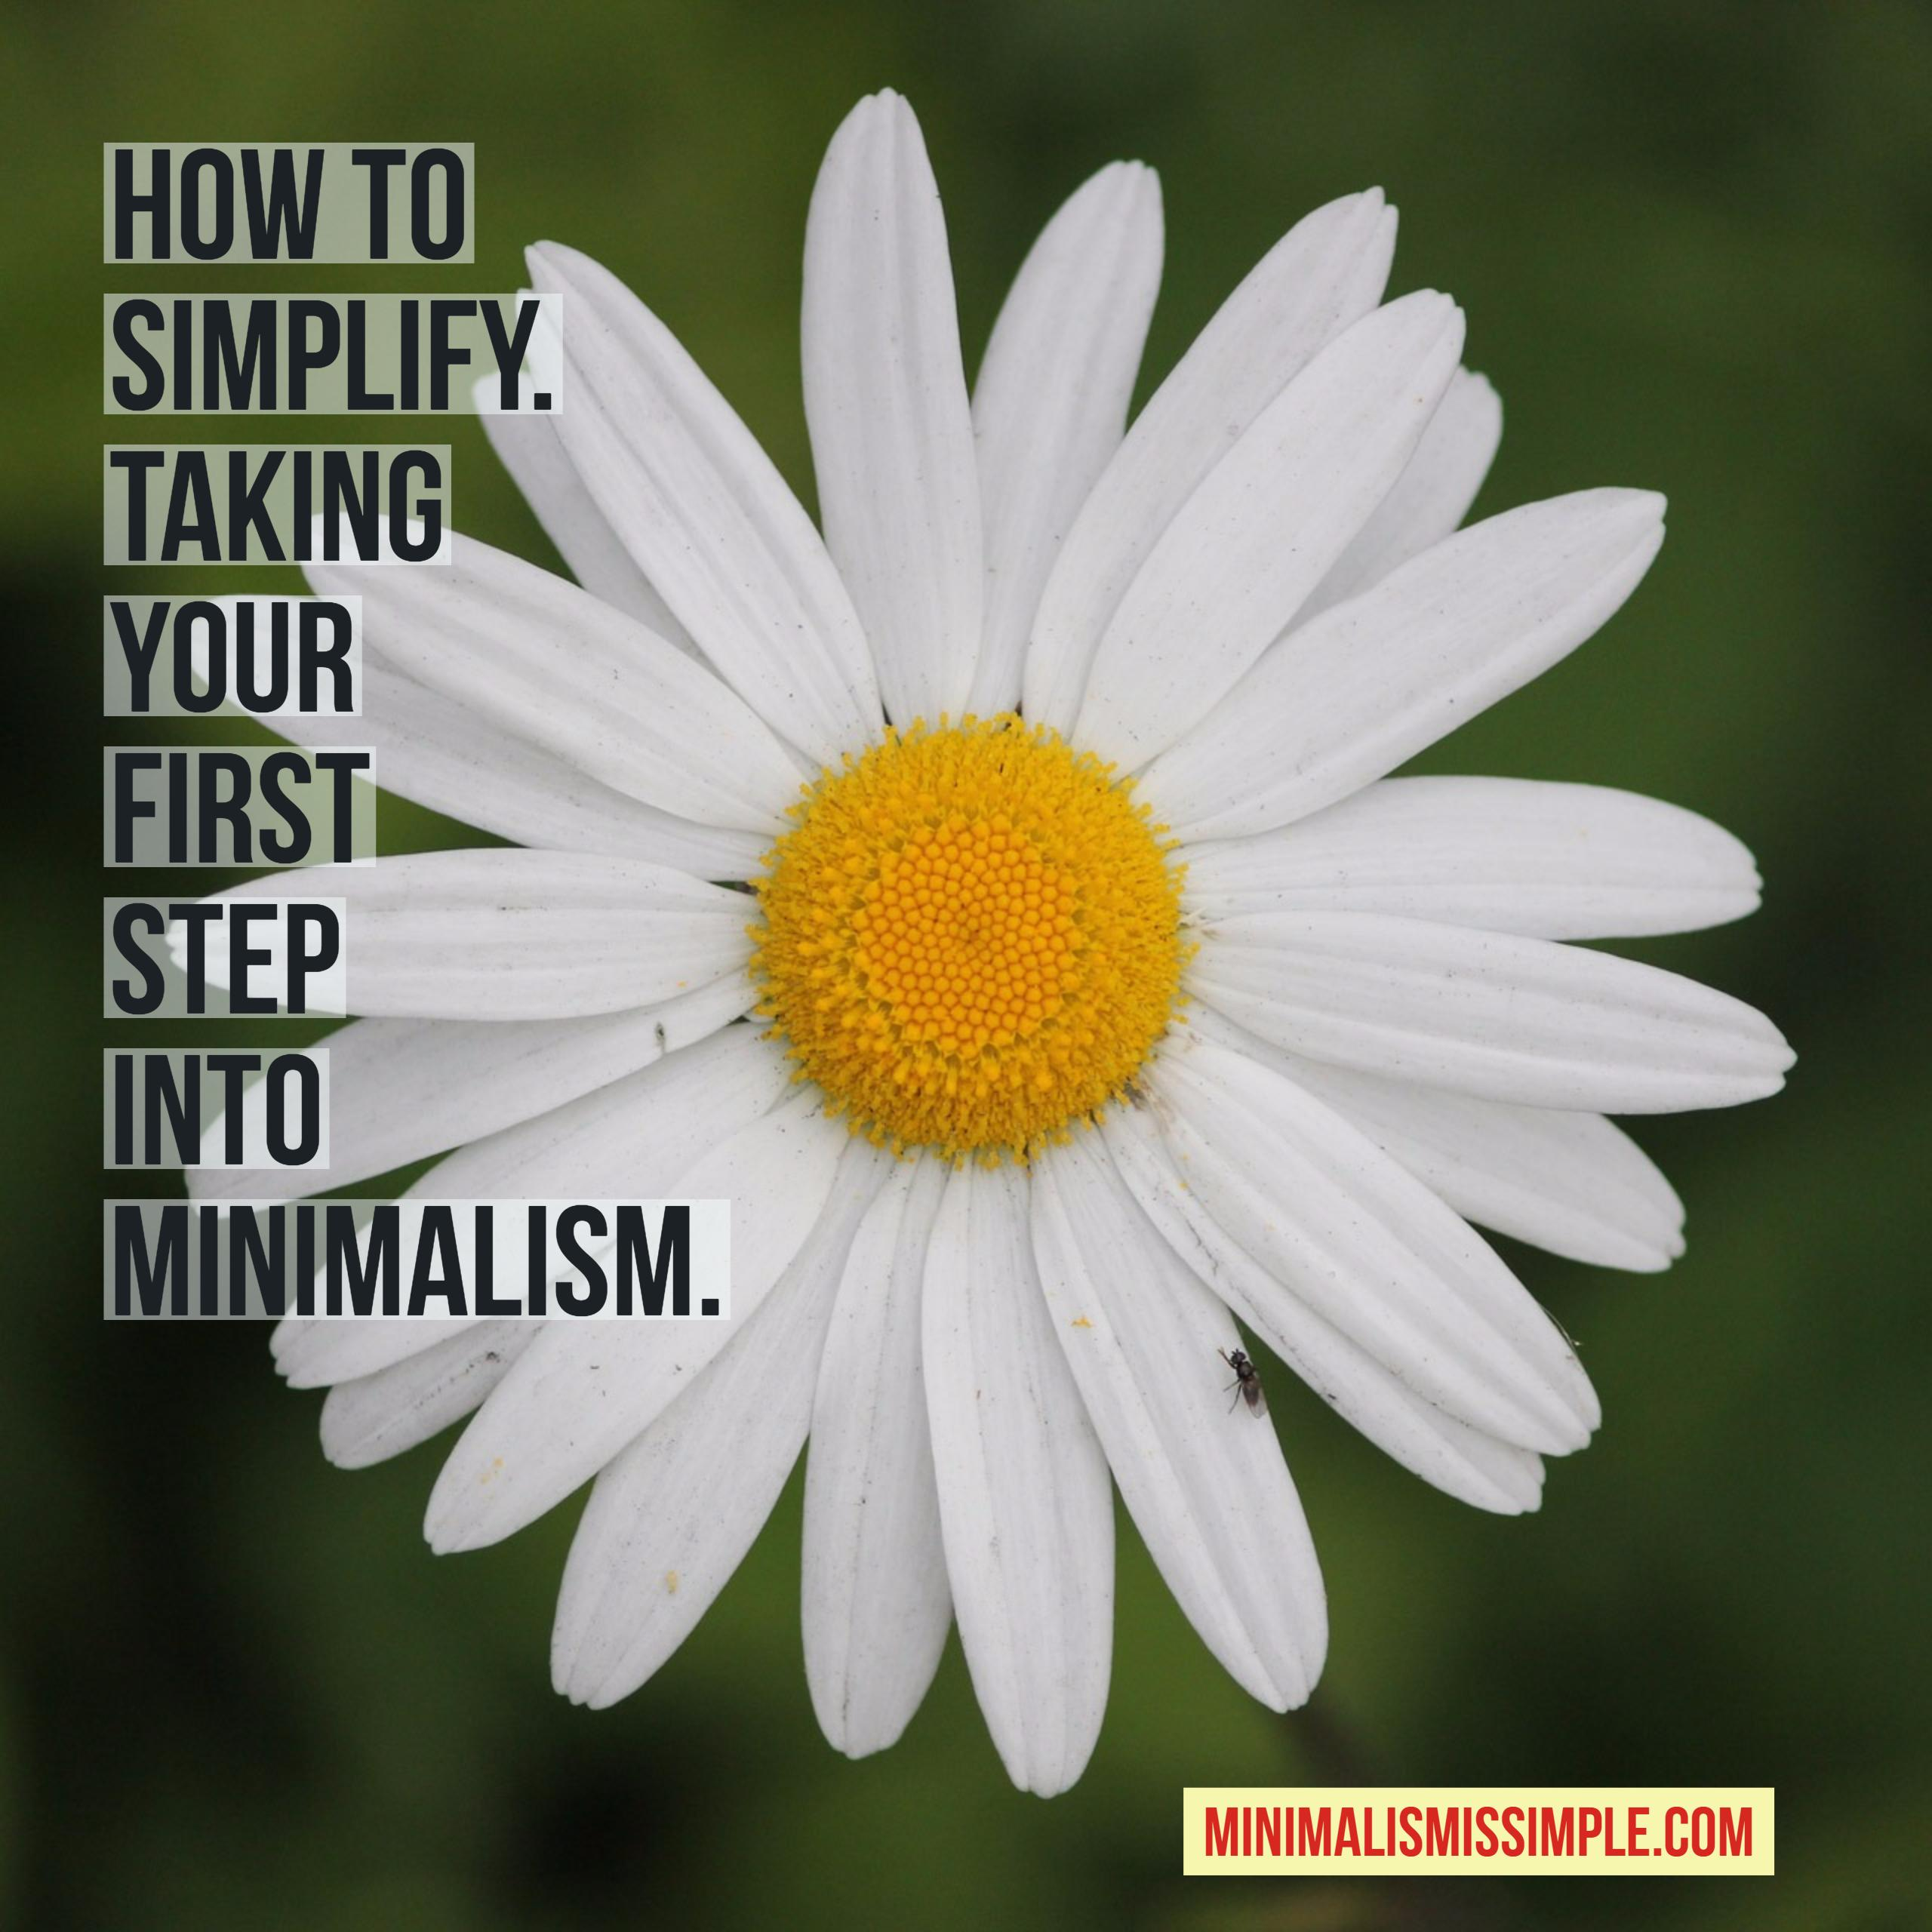 how to simplify your life. taking the first steps toward a minimalist lifestyle. minimalismissimple